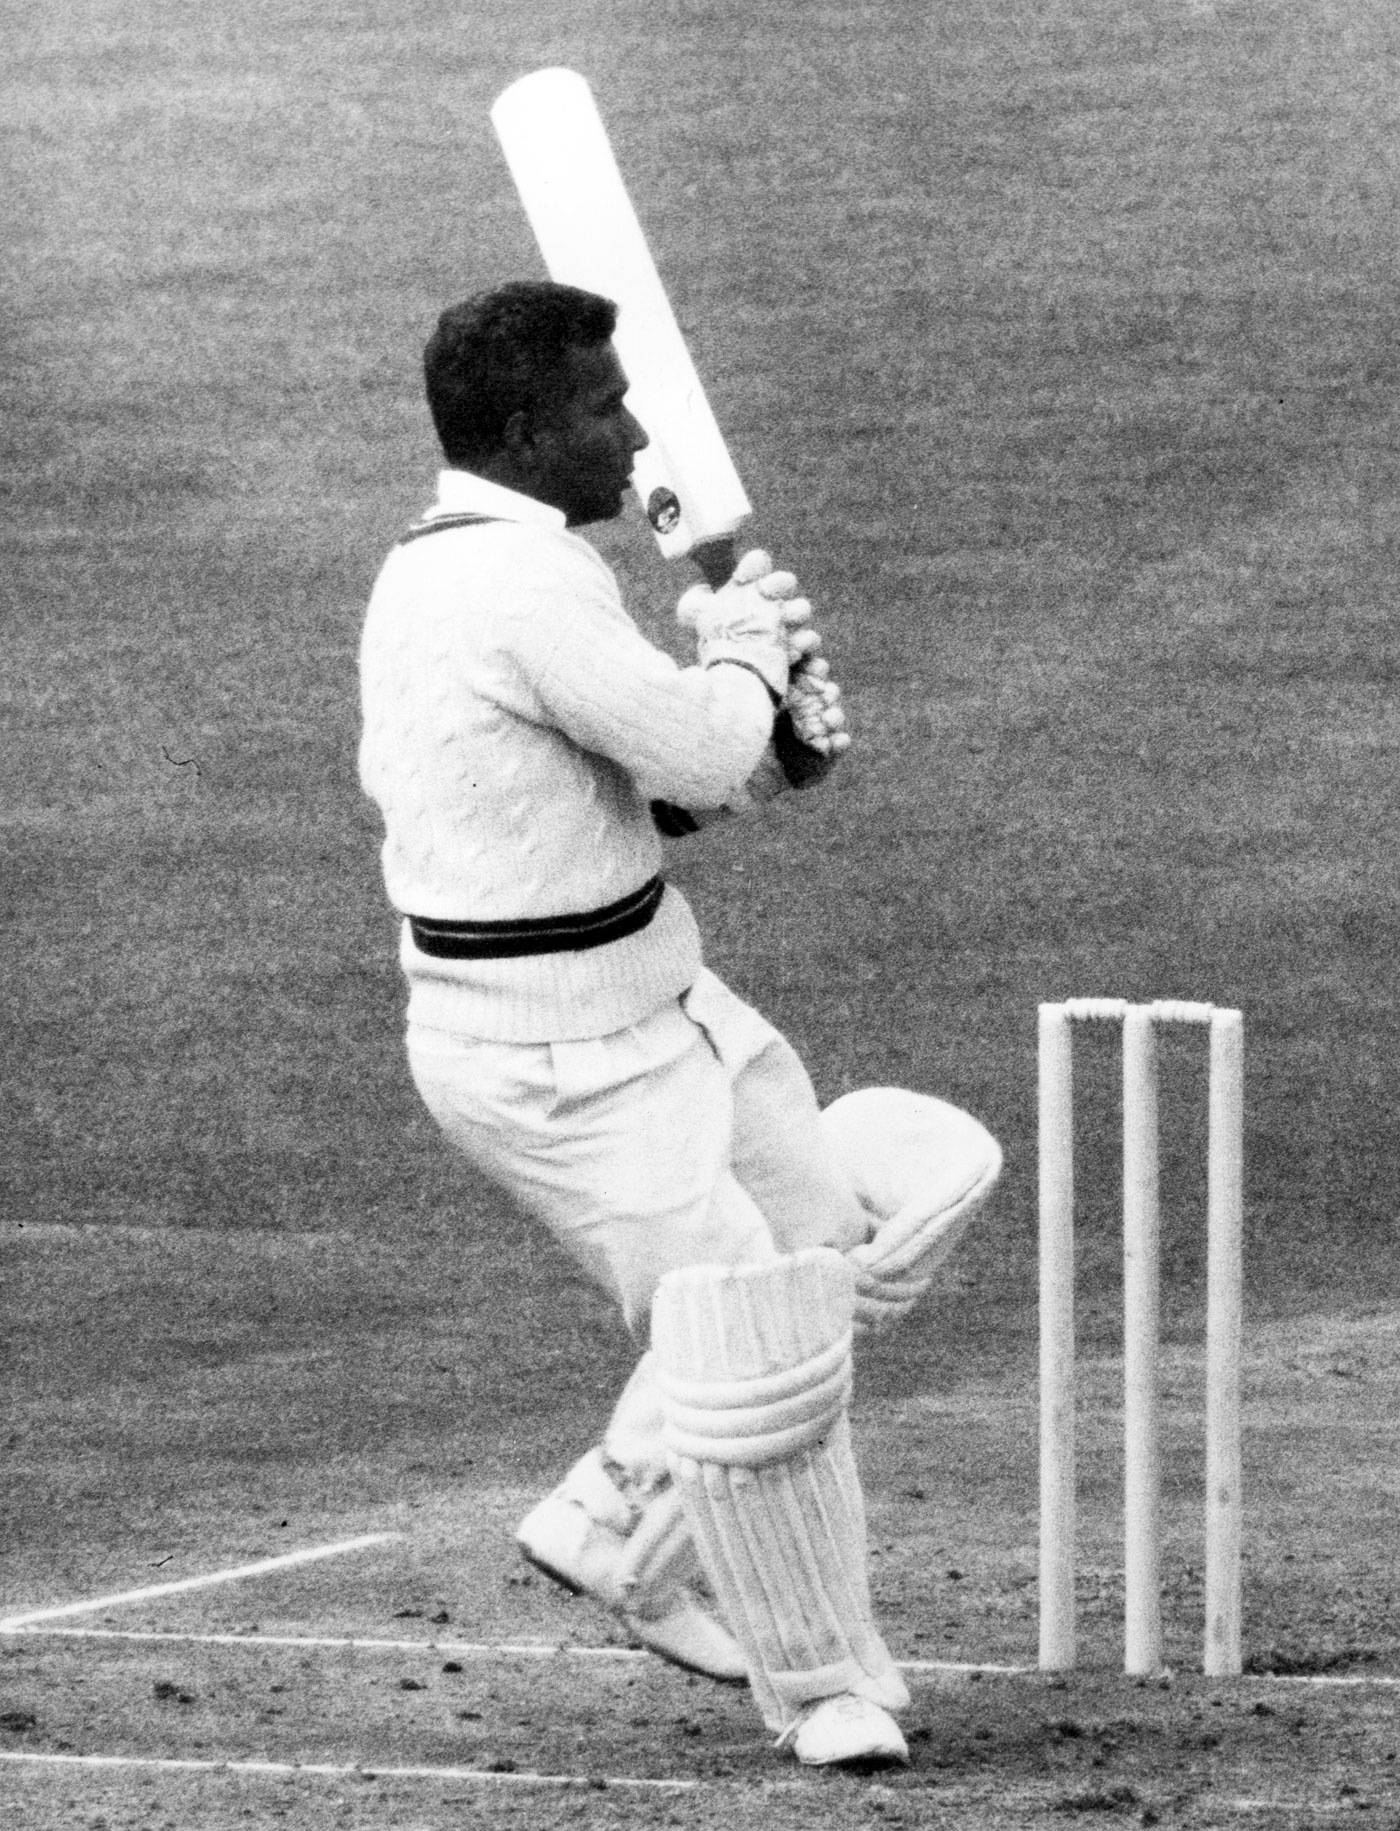 Control K: Kanhai ruled the field with his bat